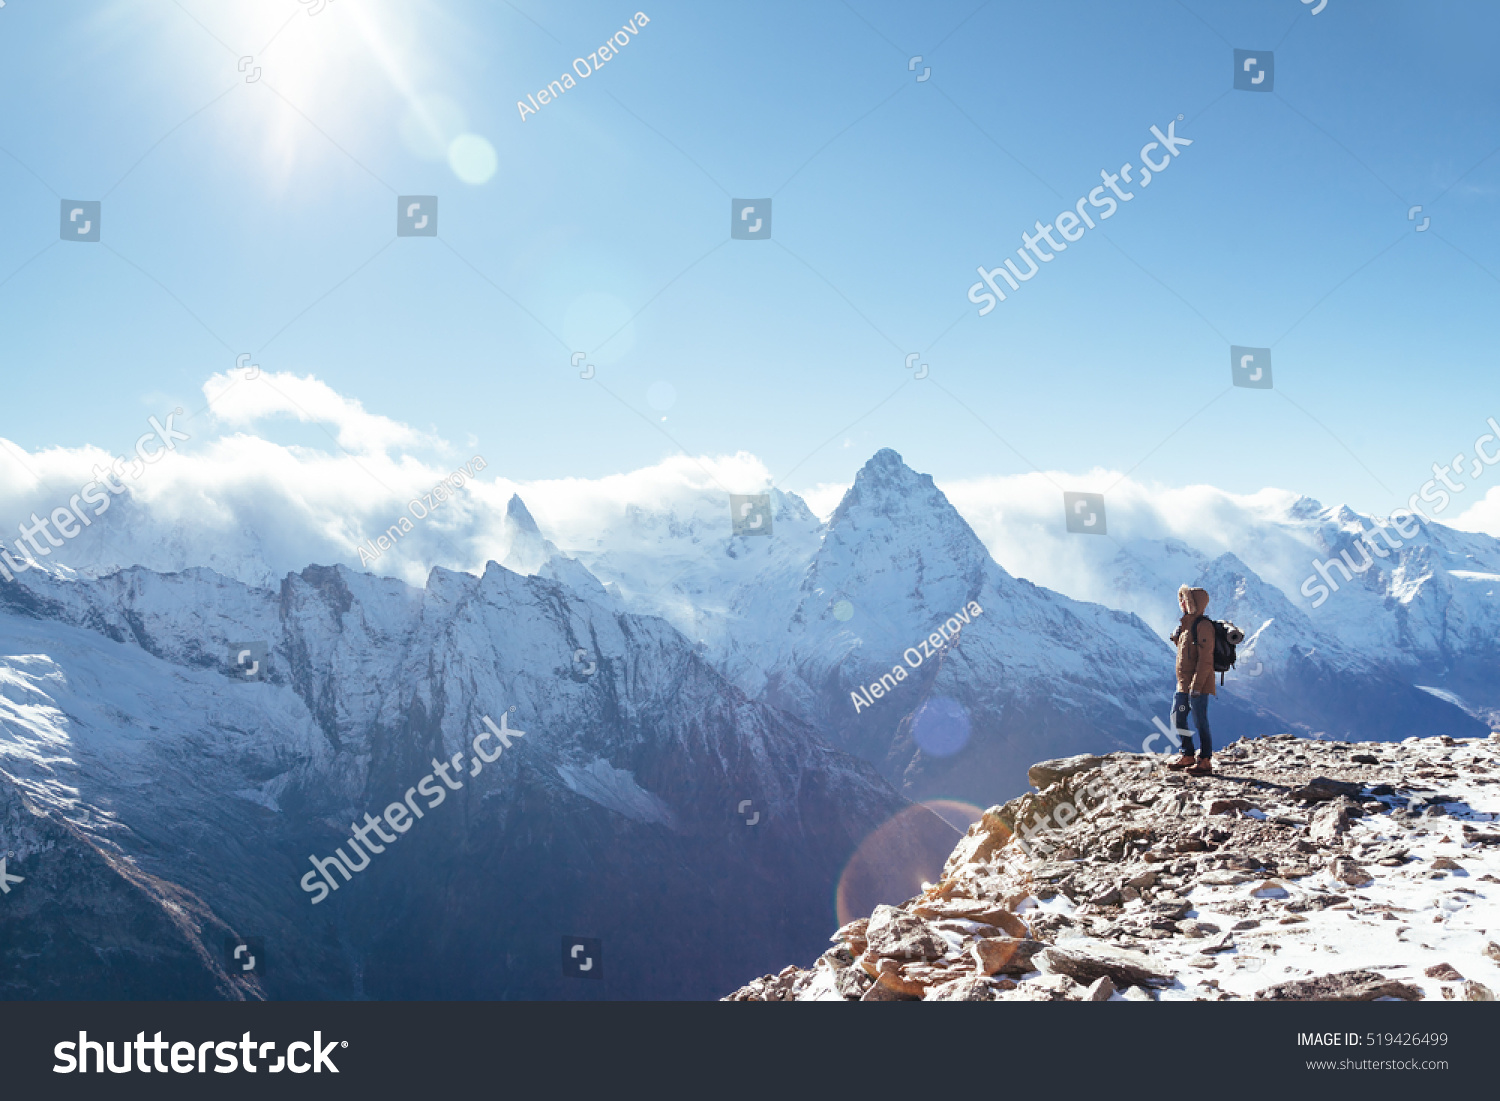 Man Backpack Trekking Mountains Cold Weather Stock Photo